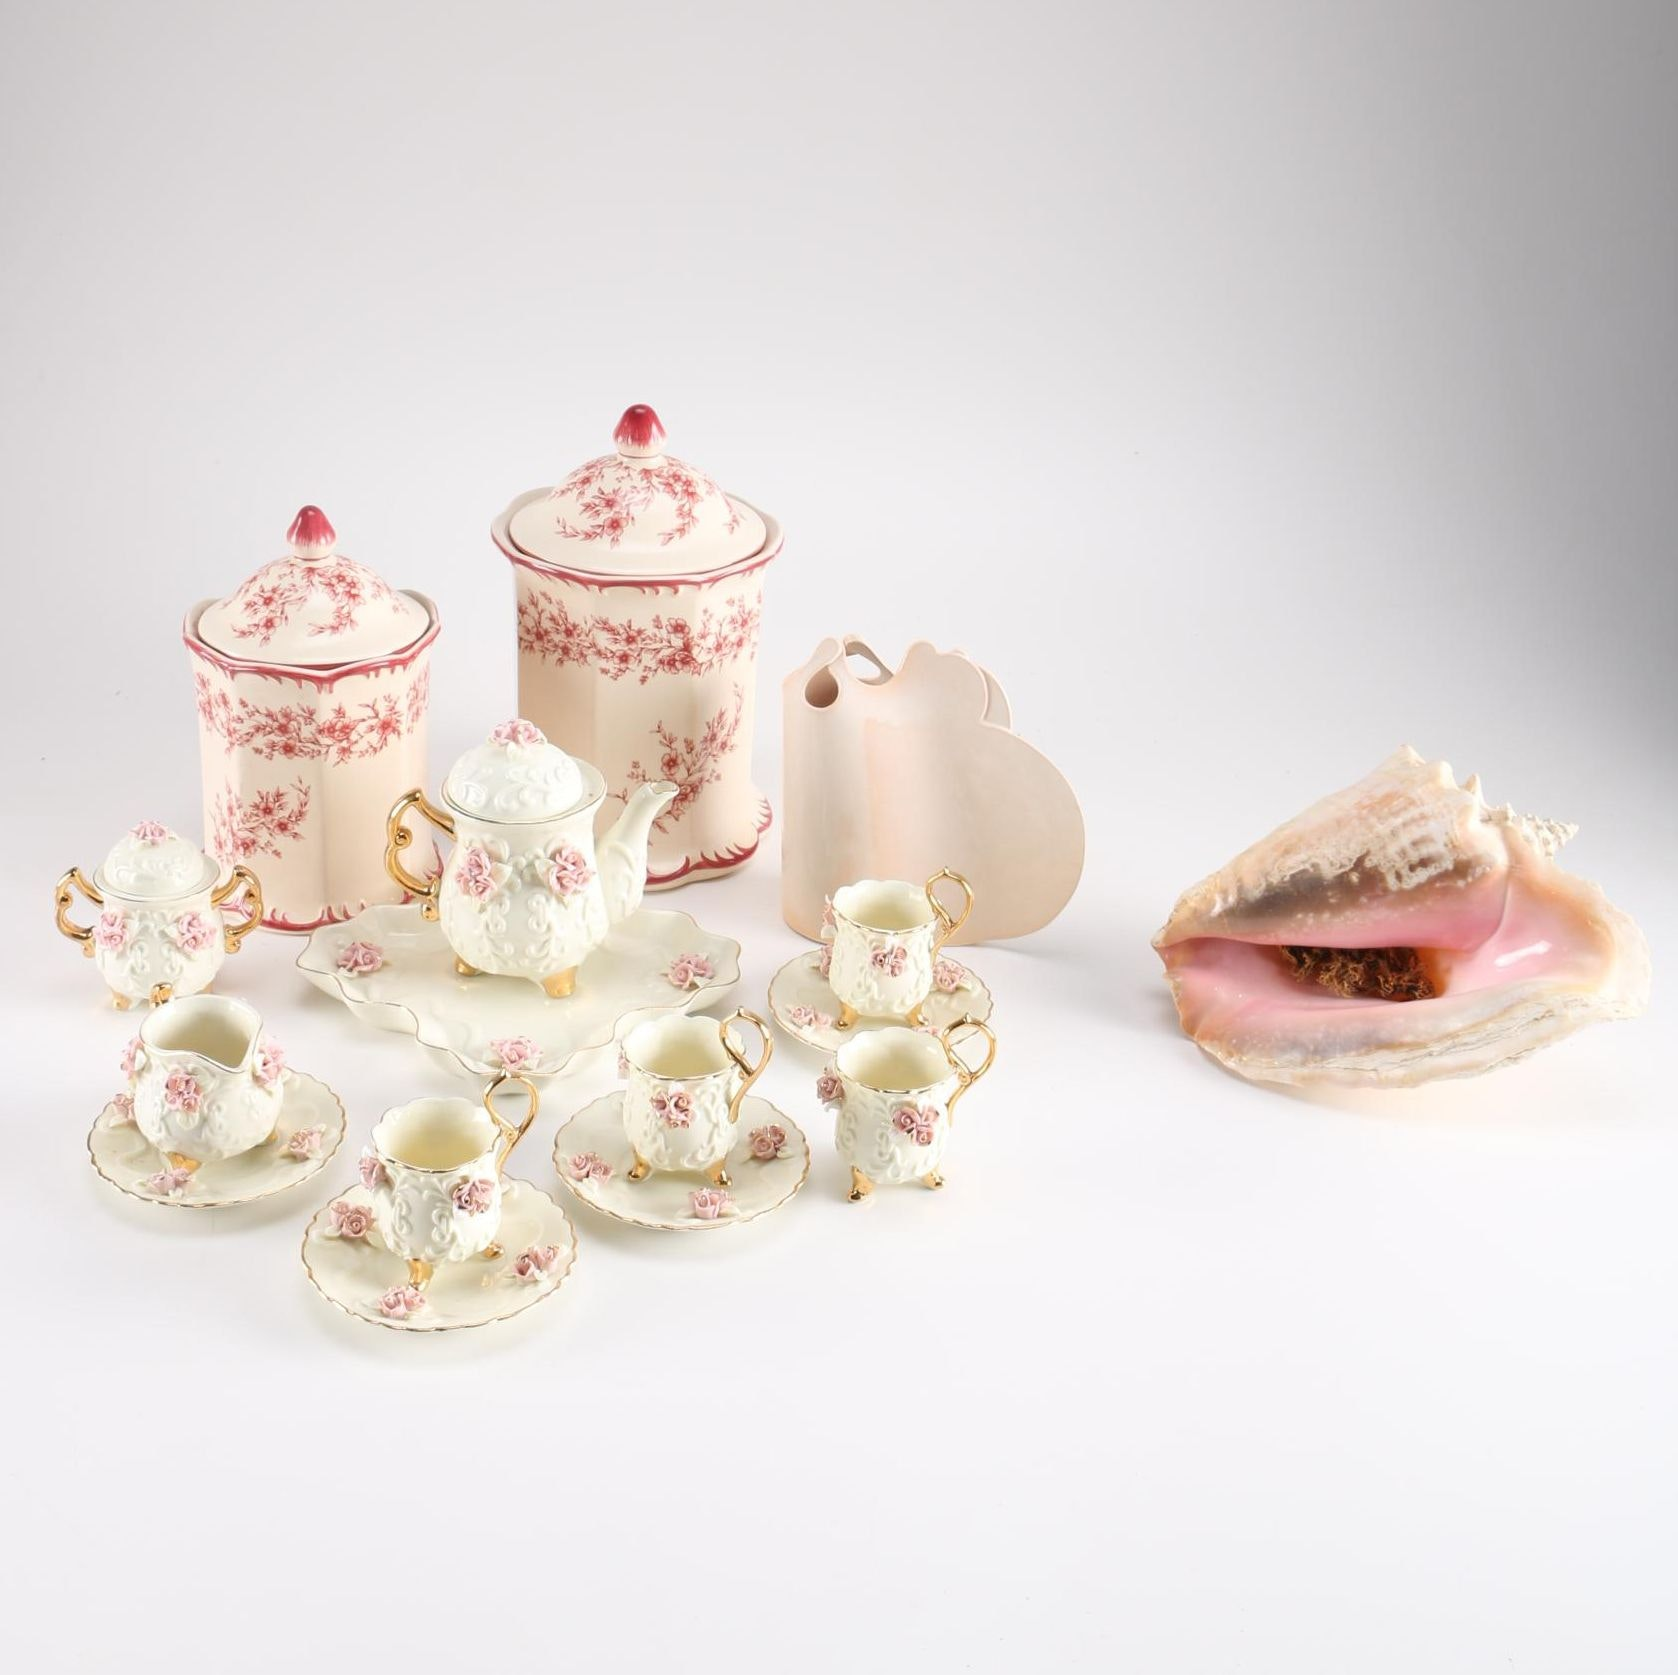 Ceramic Pink Rose Tea Set and More